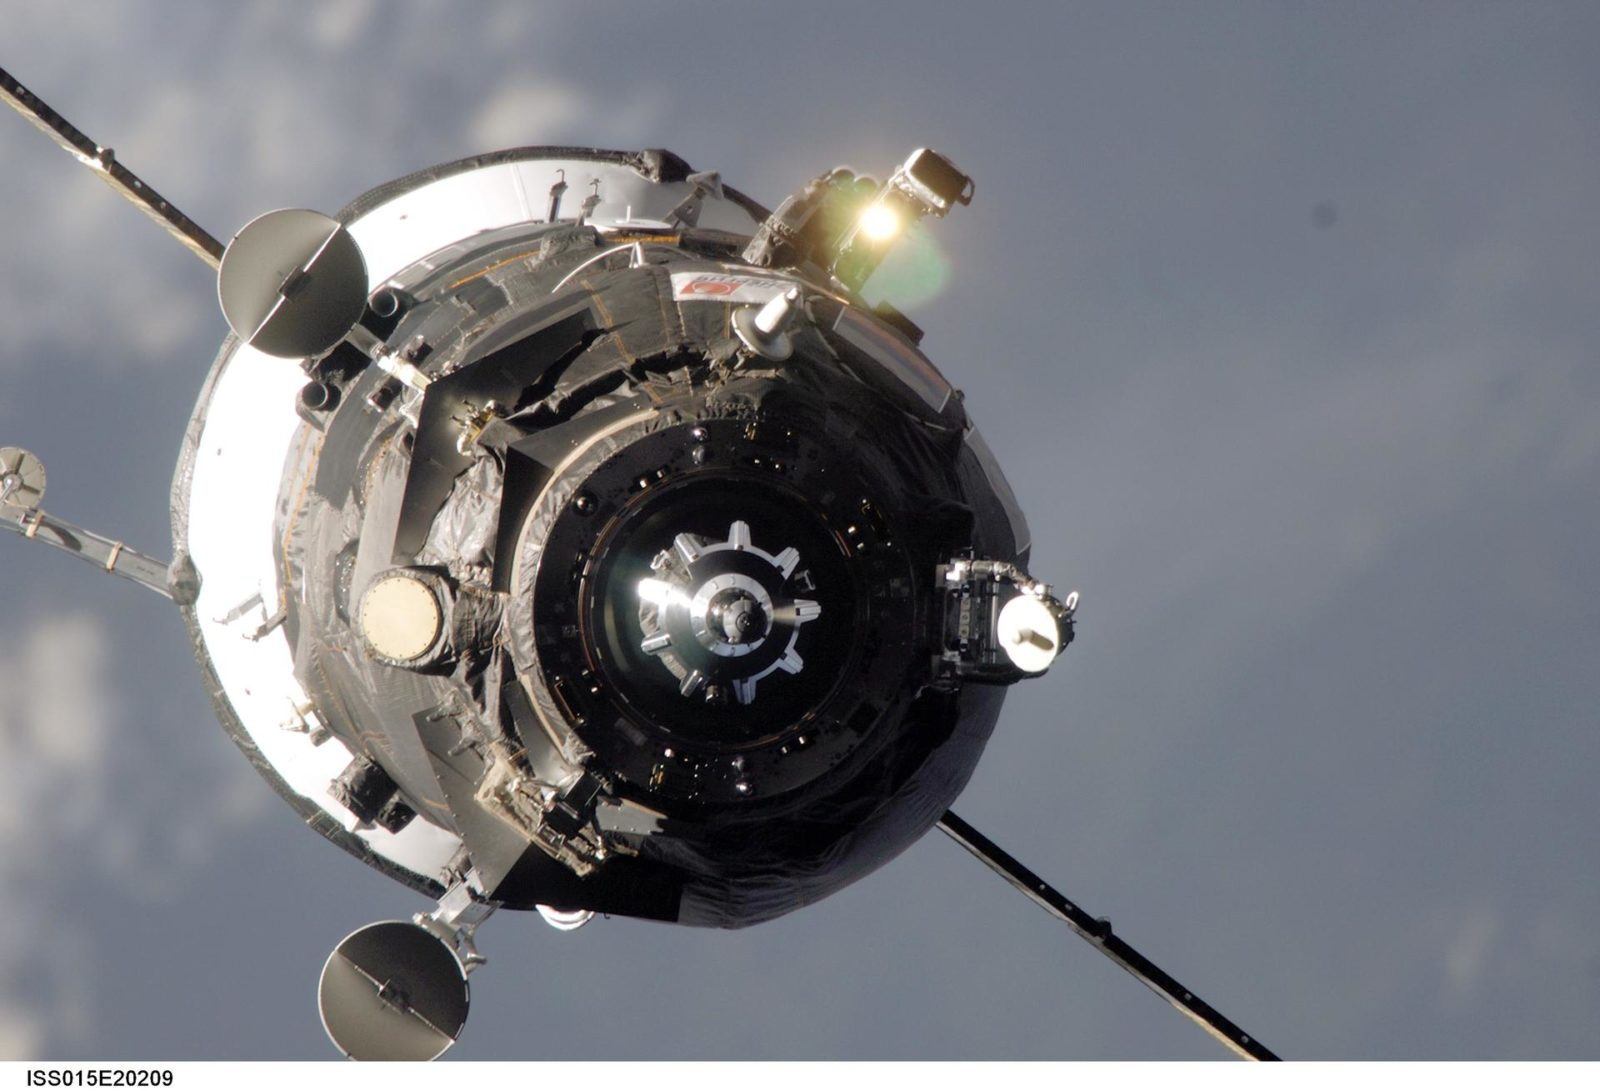 View of Progress Spacecraft on approach the ISS during Expedition 15